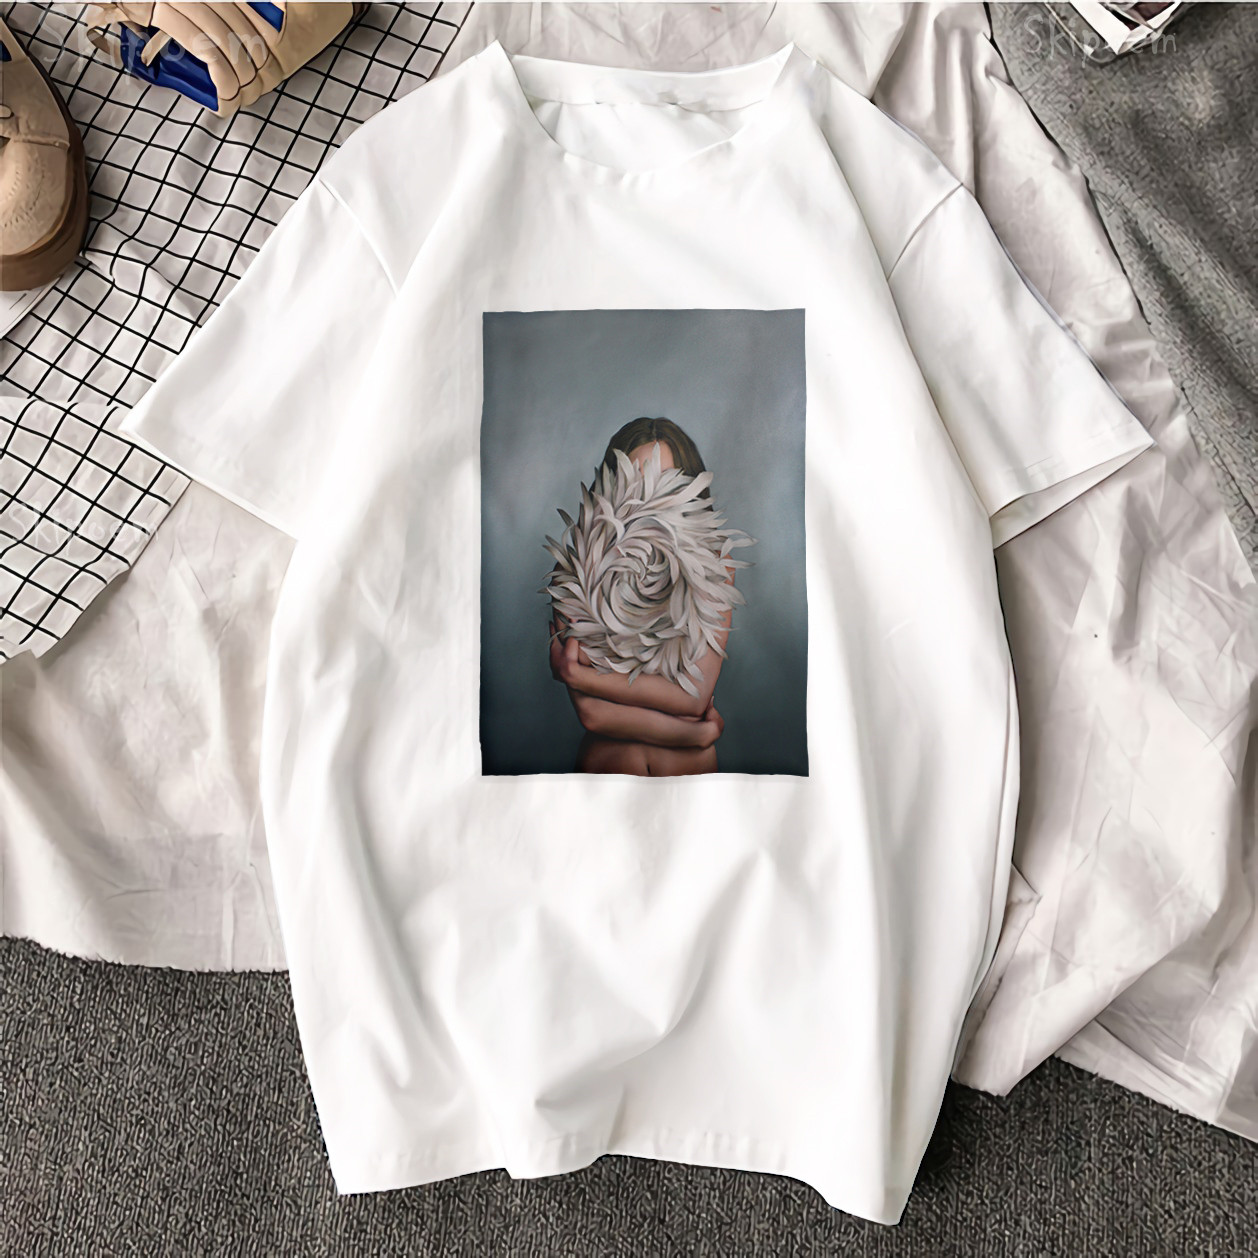 New Cotton Aesthetics T shirt Sexy Flowers Feather Printed Fashion Casual Couple T Shirt 3